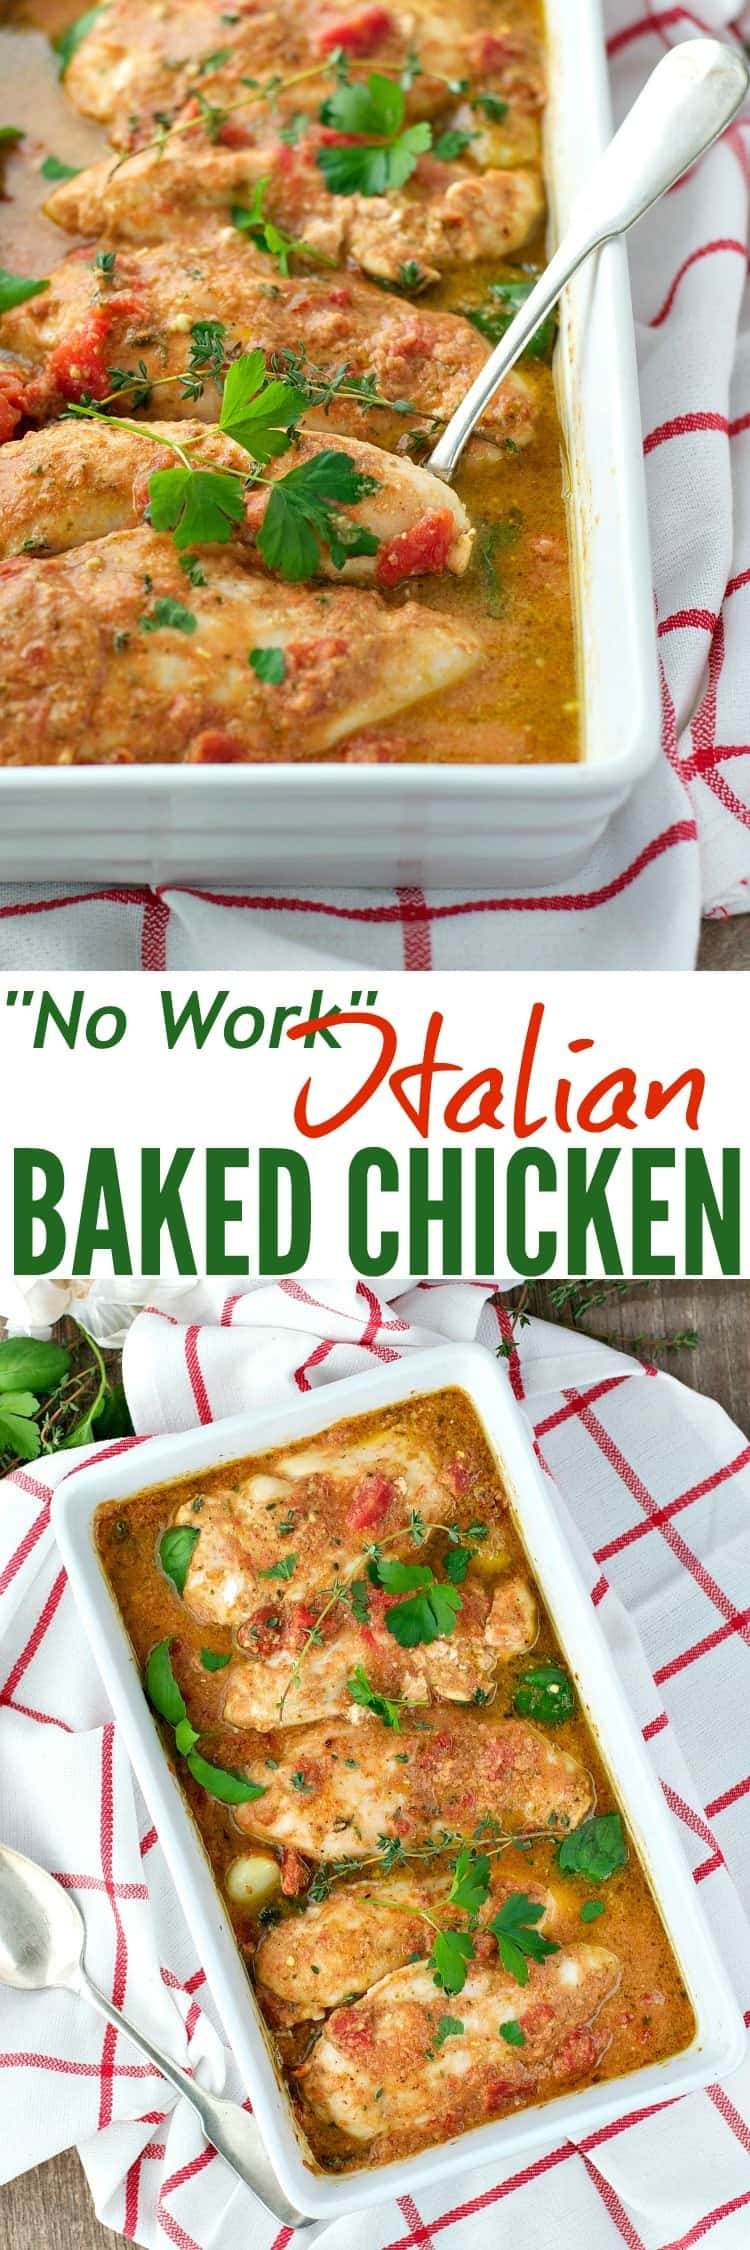 No Work Italian Baked Chicken is a fast, healthy, and easy dinner that cooks in its own garlic and herb pan sauce!